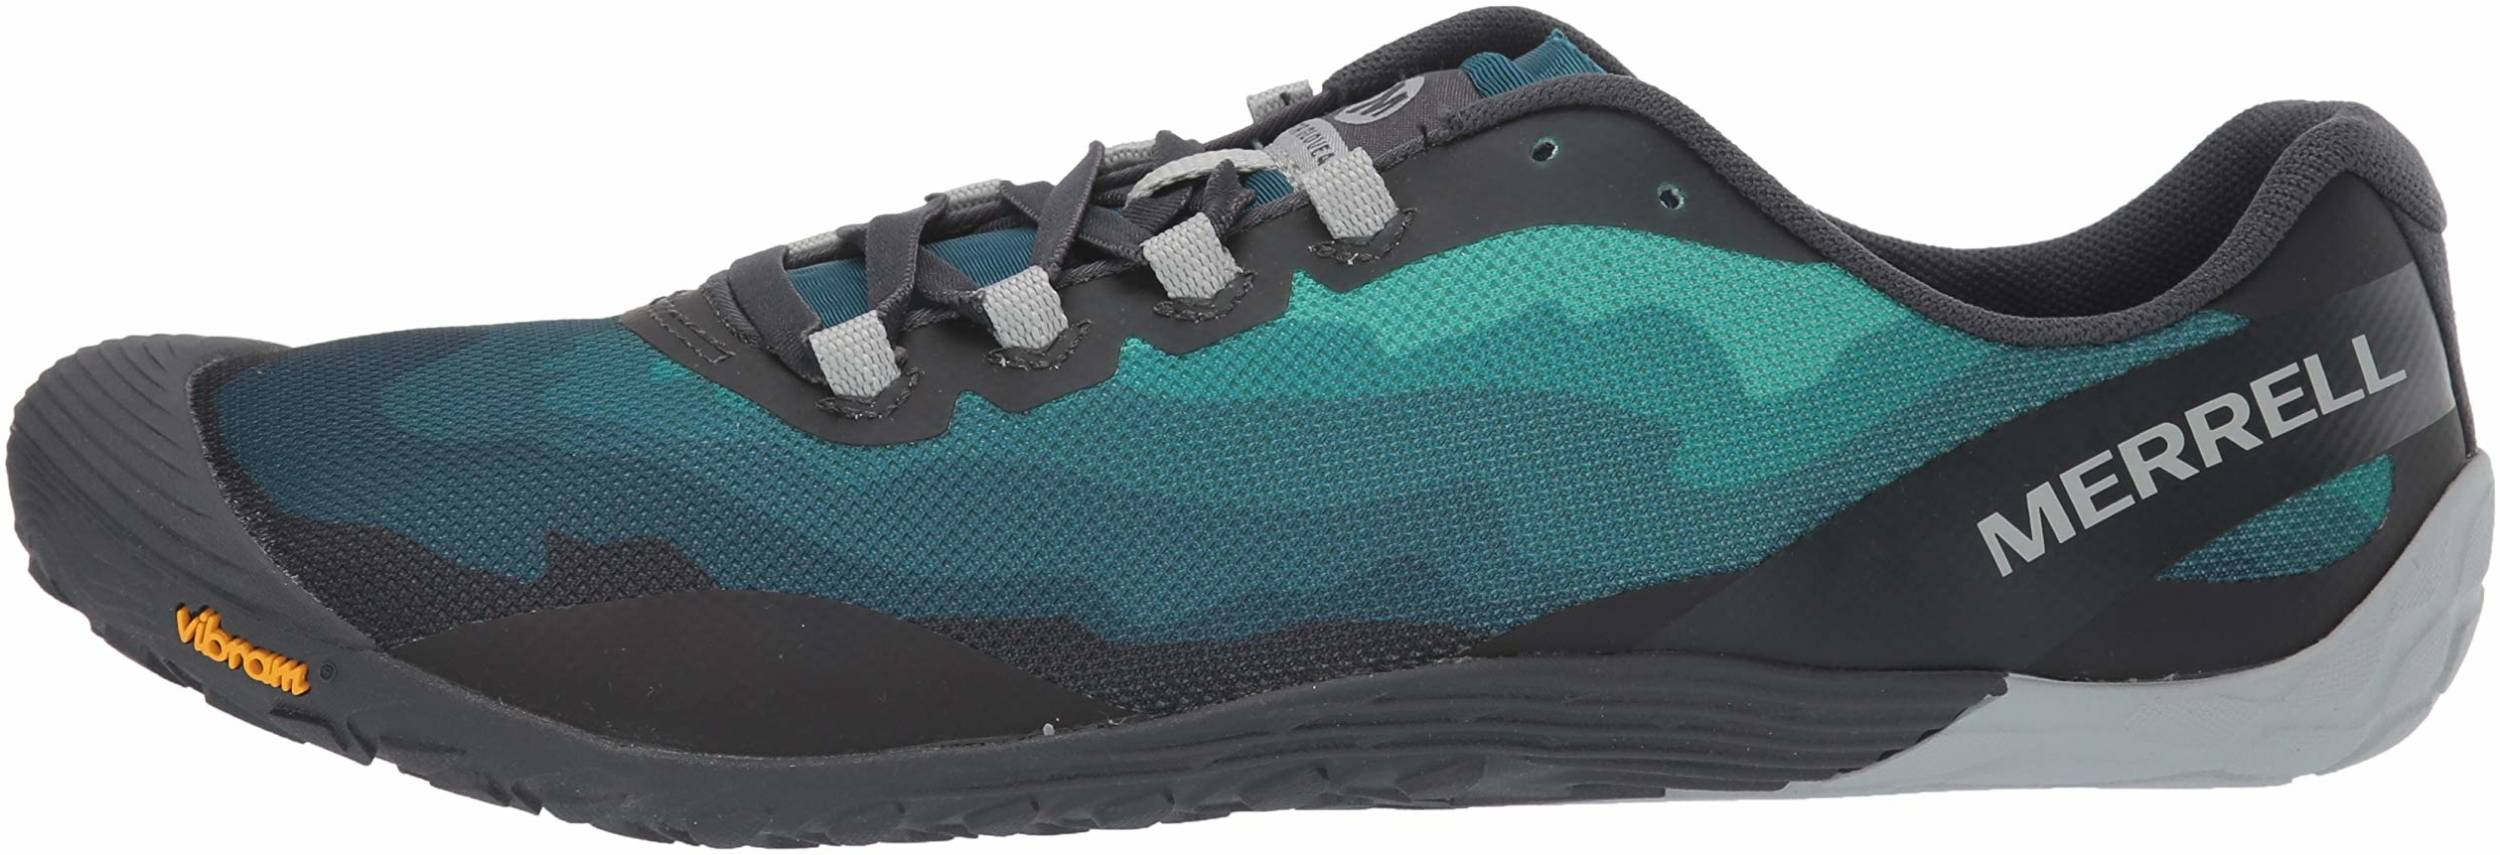 Save 32% on Barefoot Running Shoes (29